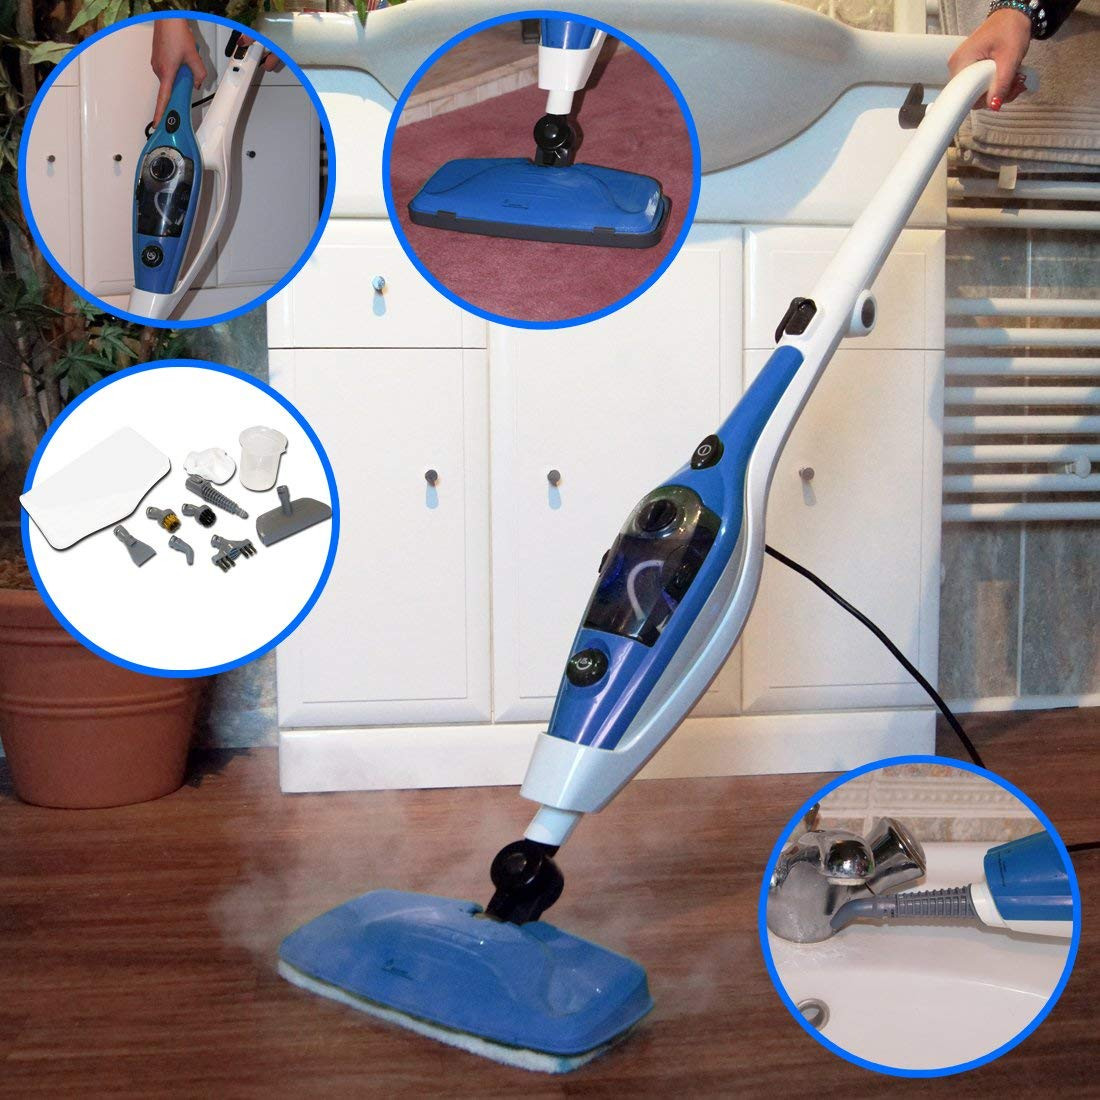 hardwood floor maintenance cleaning of wolf pro 1500w 9 in 1 super heated steam cleaner cleaning system throughout steam cleaner cleaning system sanitising upright and hand held complete with wide range of accessories clean carpets windows hard wooden floor